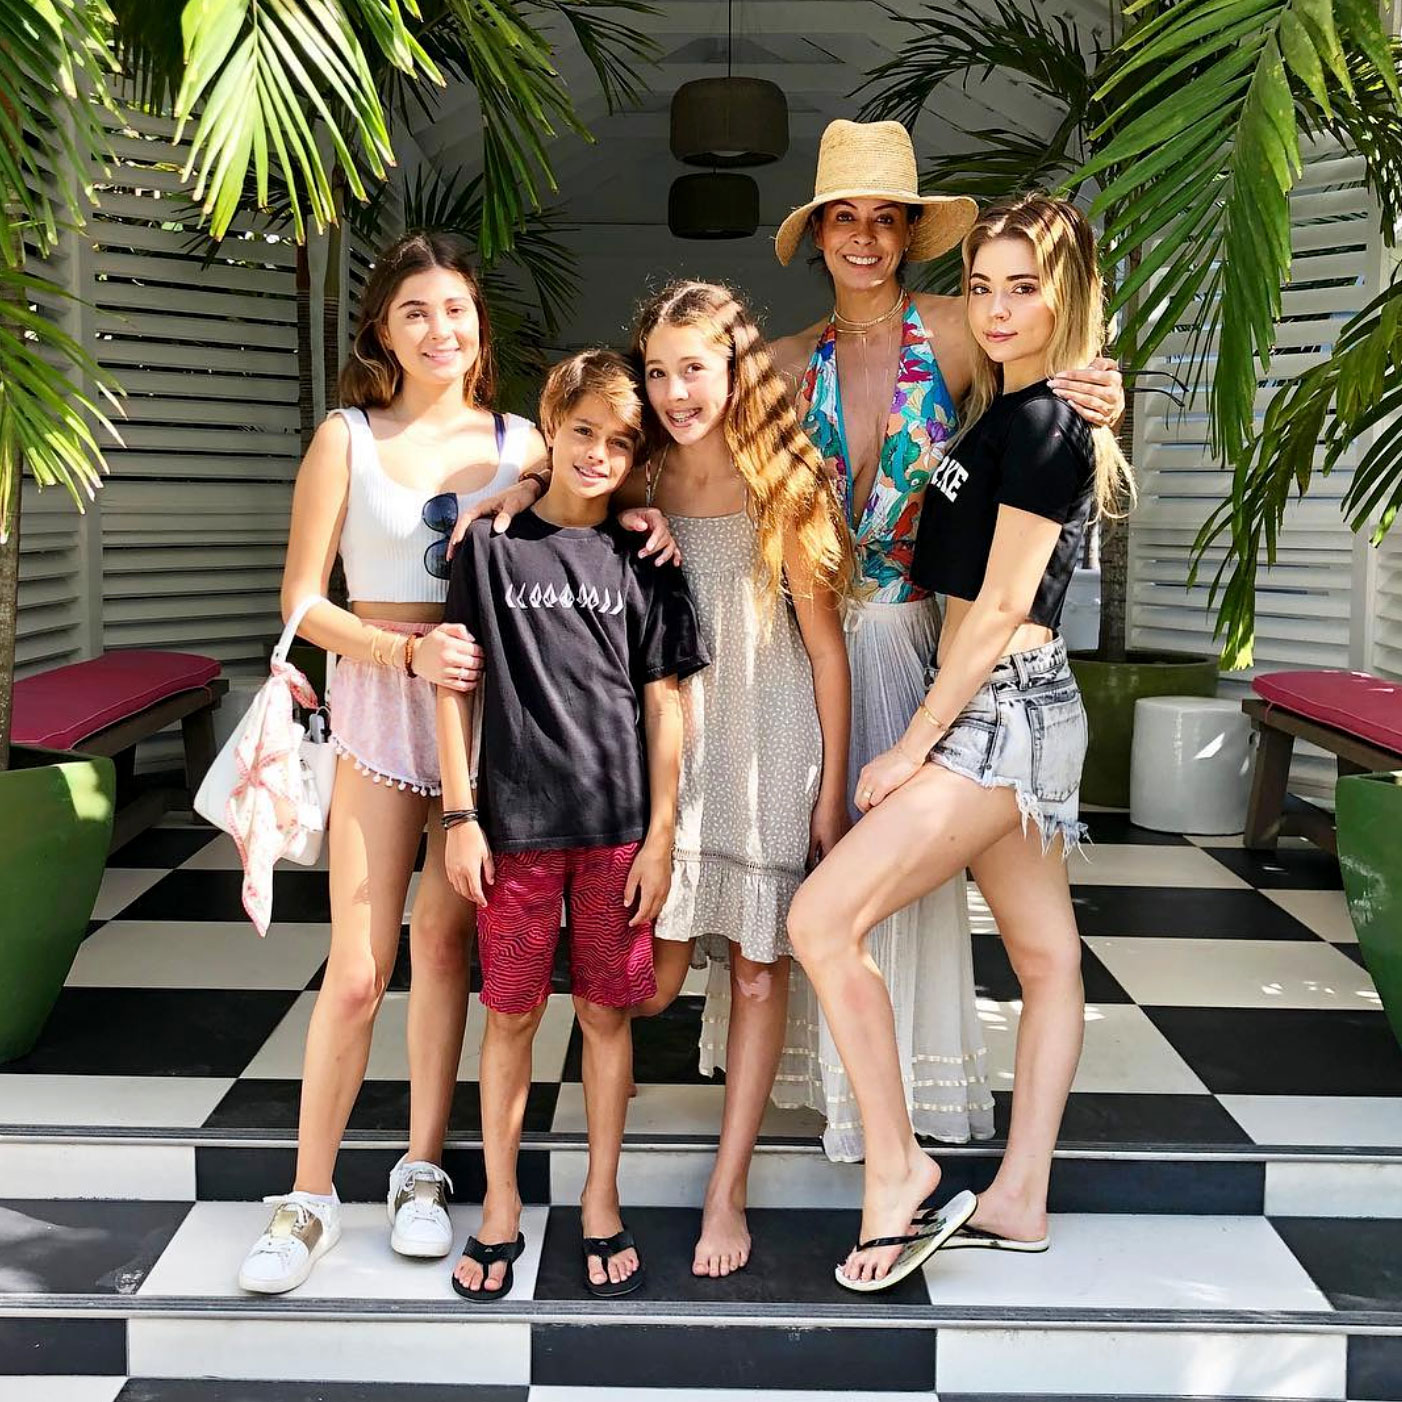 Brooke Burke Reveals Key to Parenting 4 Kids - Brooke Burke and children at Harbour Island, Harbour Island, Bahamas.